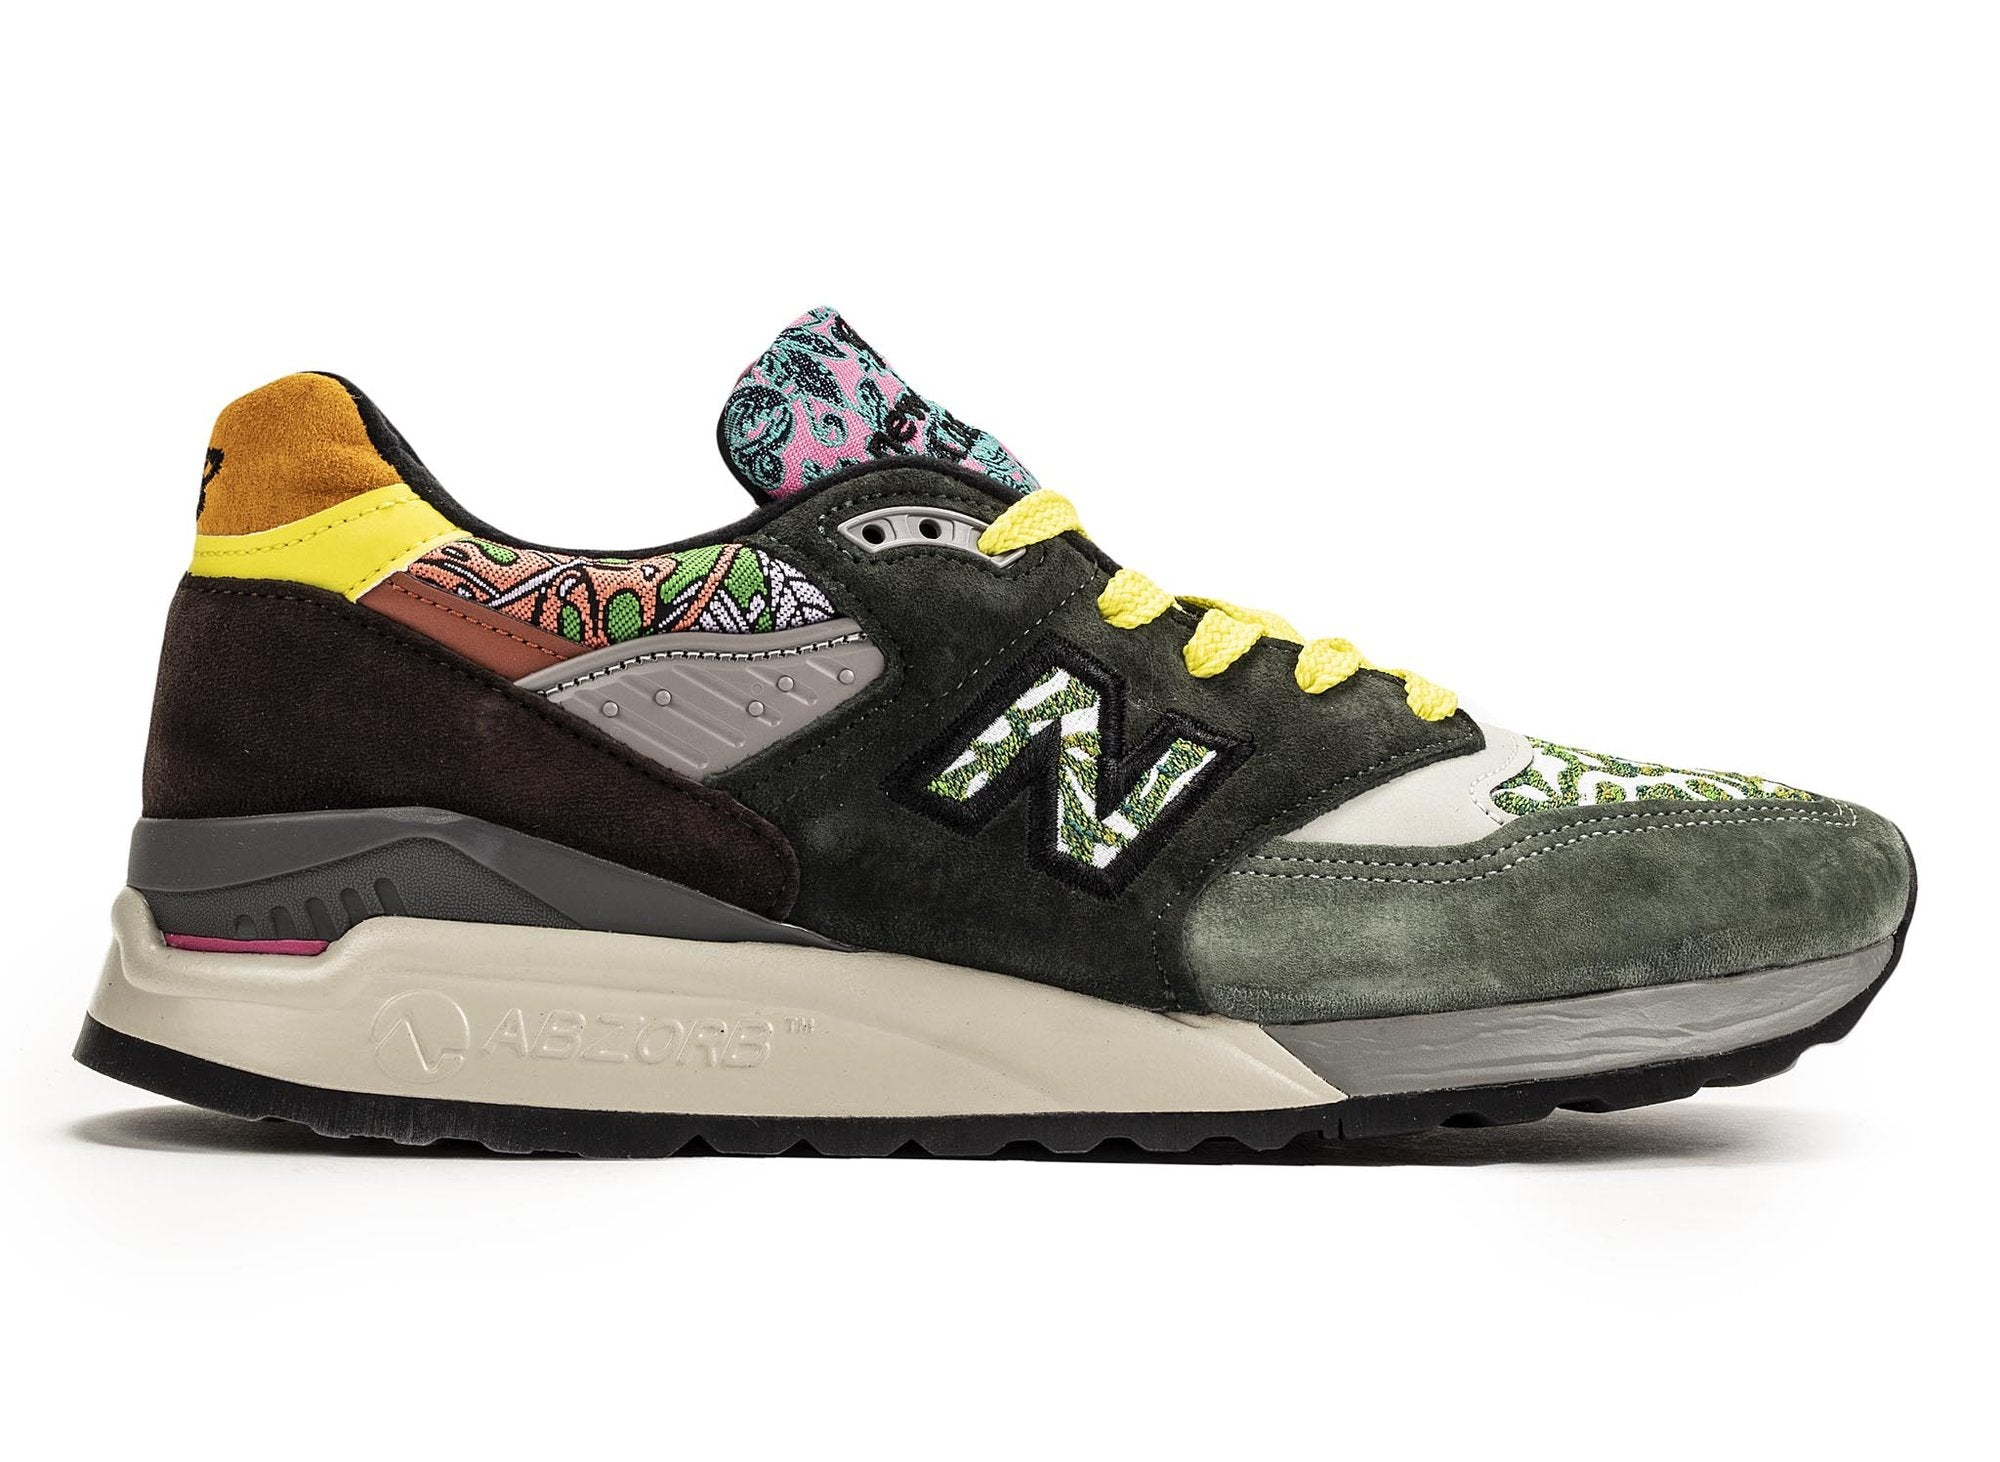 innovative design acaf9 dfe5c NEW BALANCE 998 Made in USA - Multicolor